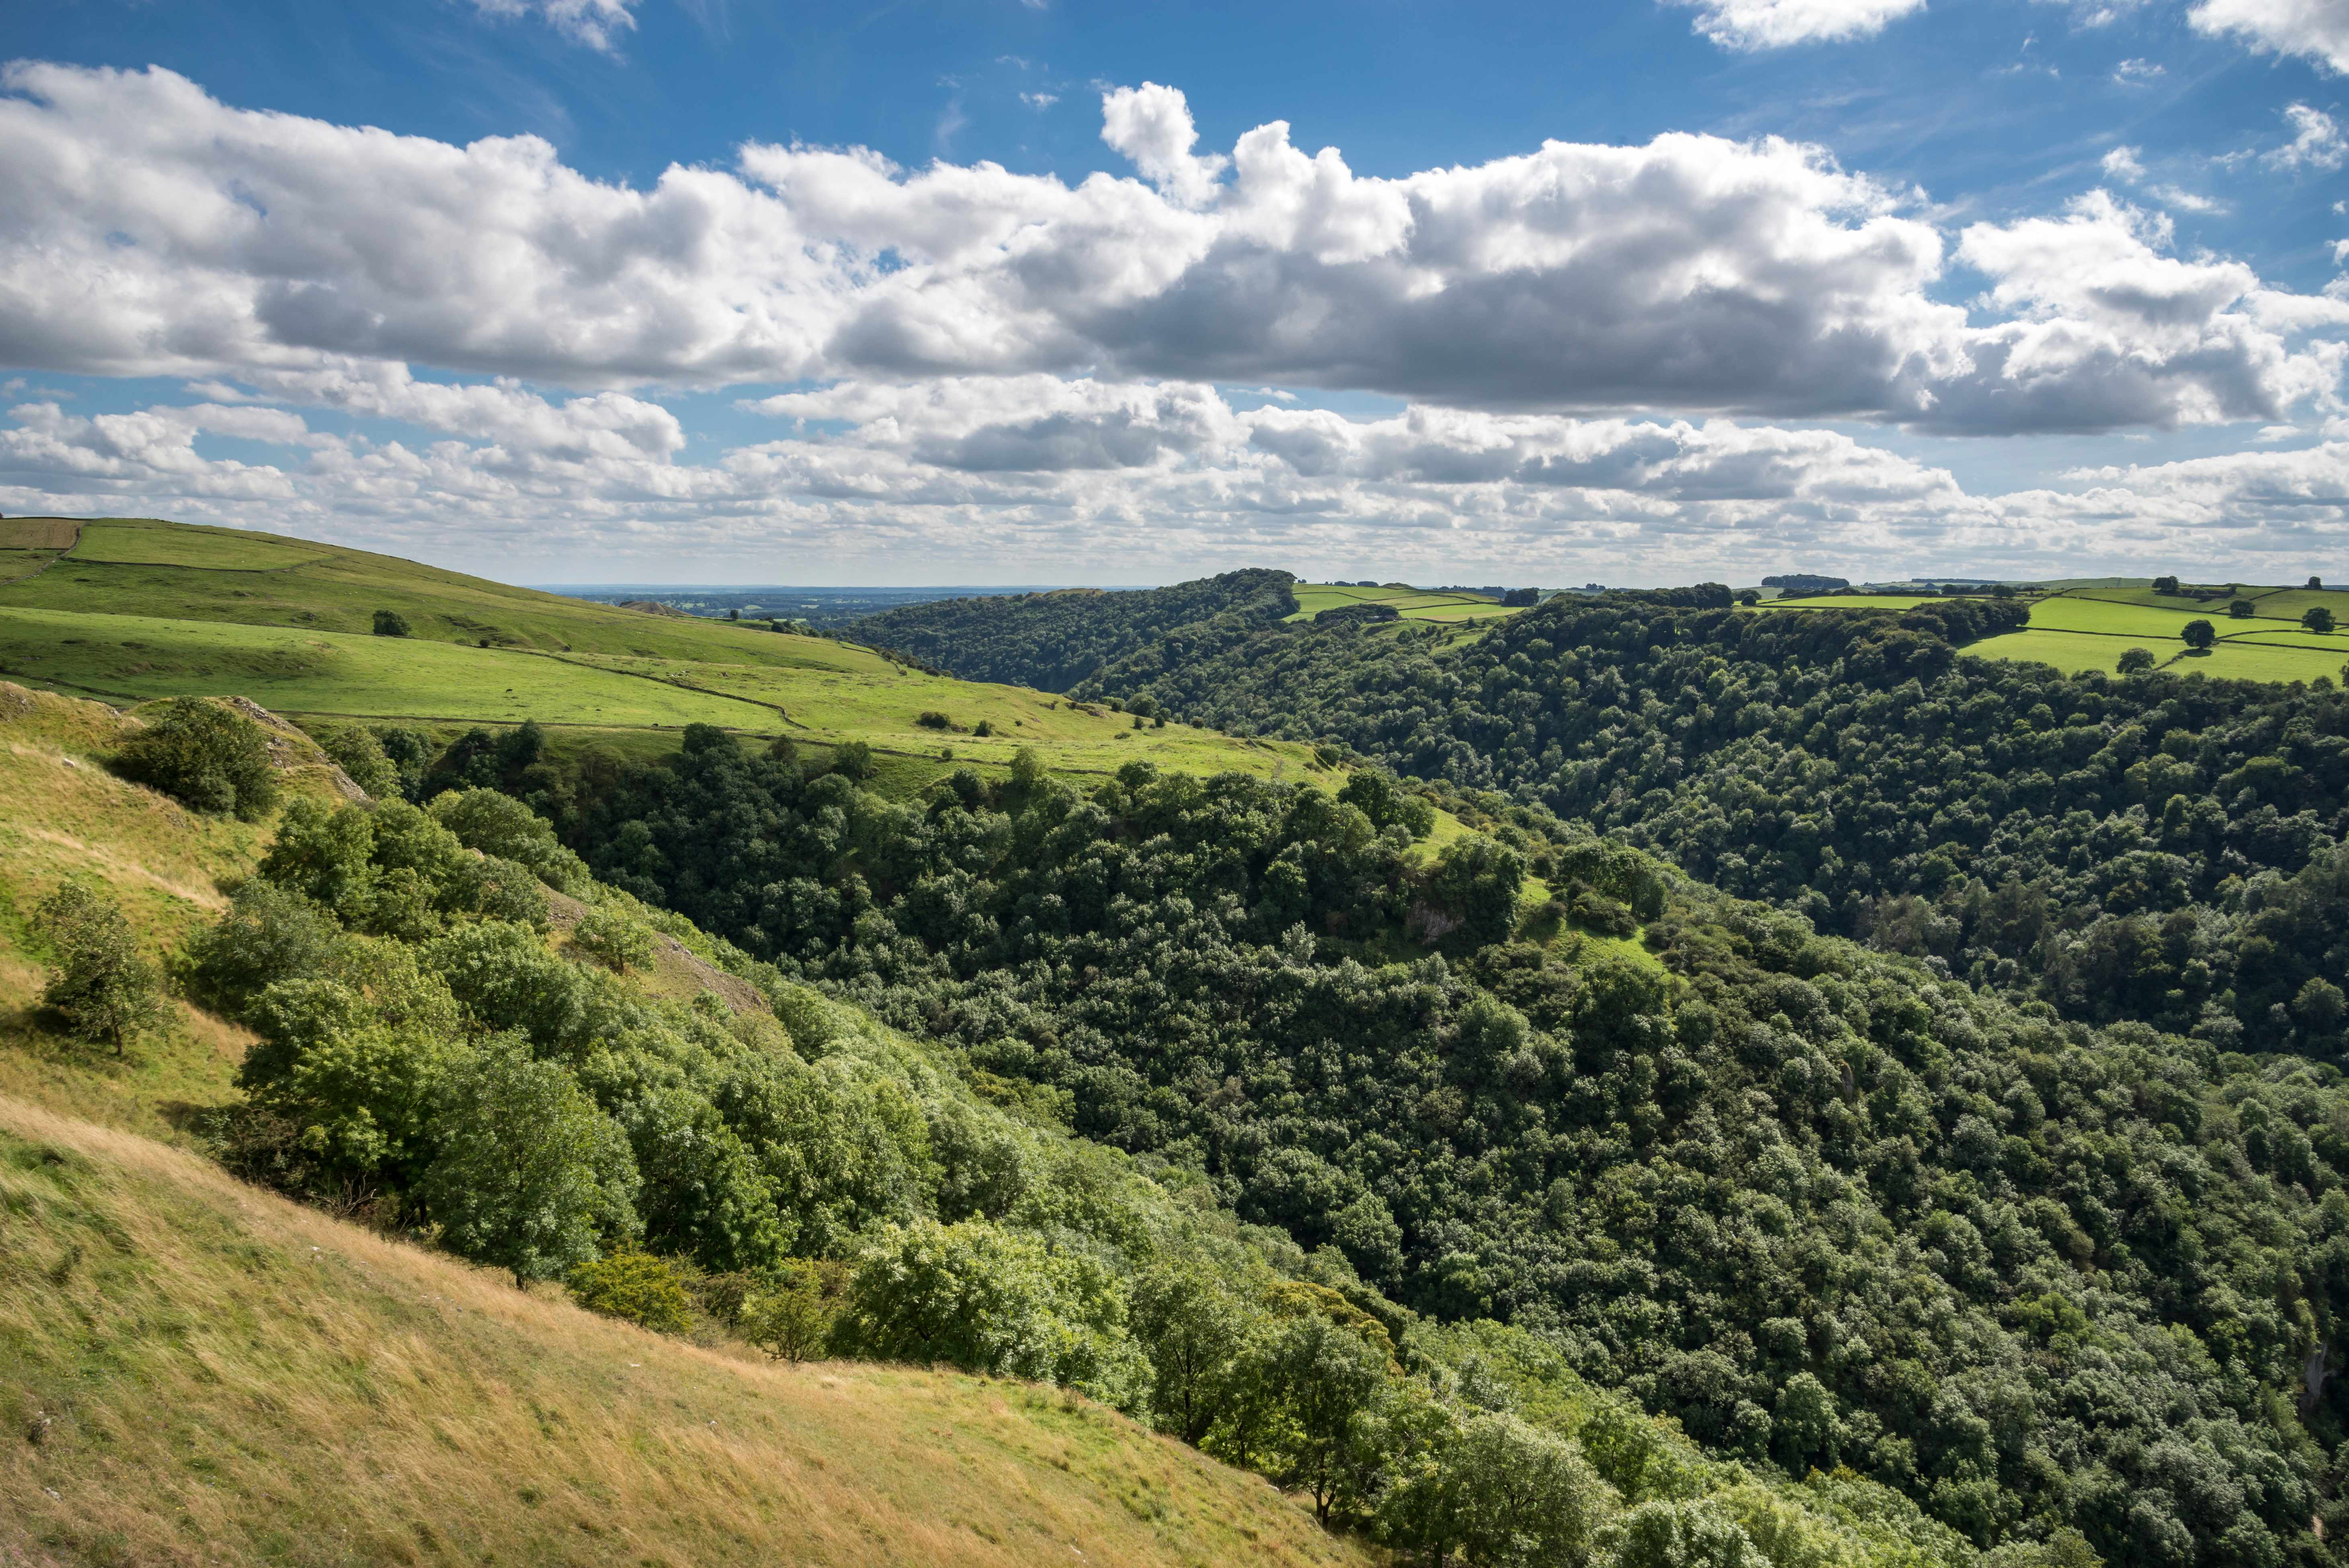 Heavily wooded slopes in Dove Dale, Peak District National Park